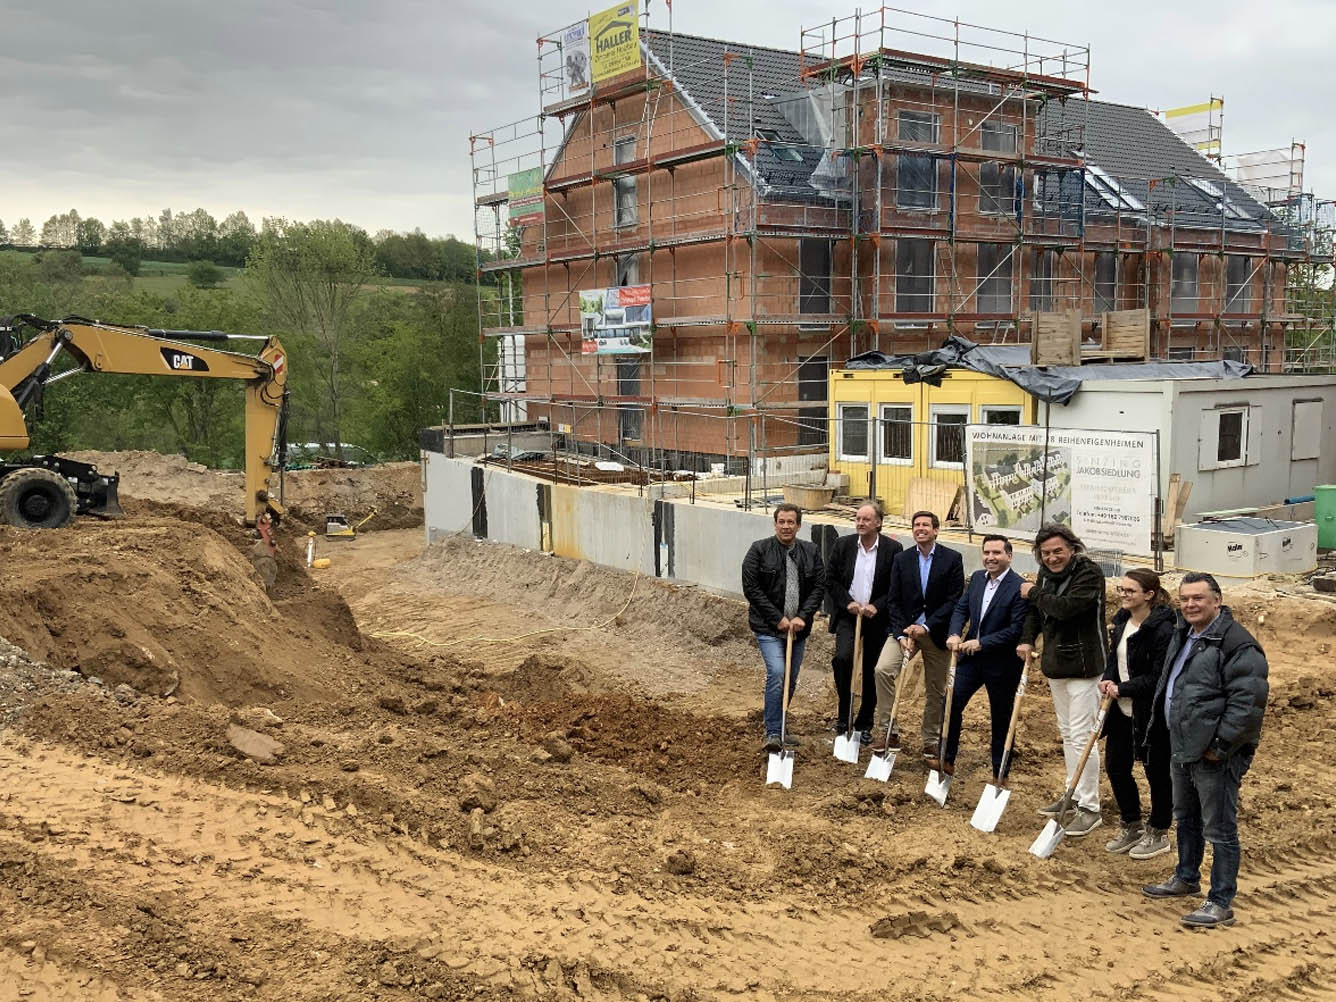 Group photo at the groundbreaking for B-Horizon's new headquarters in Sinzing: From left to right: Armin Zeiler (Builder), Andreas Unsicker (CEO InoTexx GmbH), Patrick Grossmann (1st Mayor of Sinzing), Mohammad Kabany (Founder and CEO B-Horizon GmbH), Karl-Heinz Heitzer (Architectural Office Heitzer), Kathrin Wutzlhofer (Architectural Office Heitzer), Marcel Hartung (Employee of InoTexx GmbH)